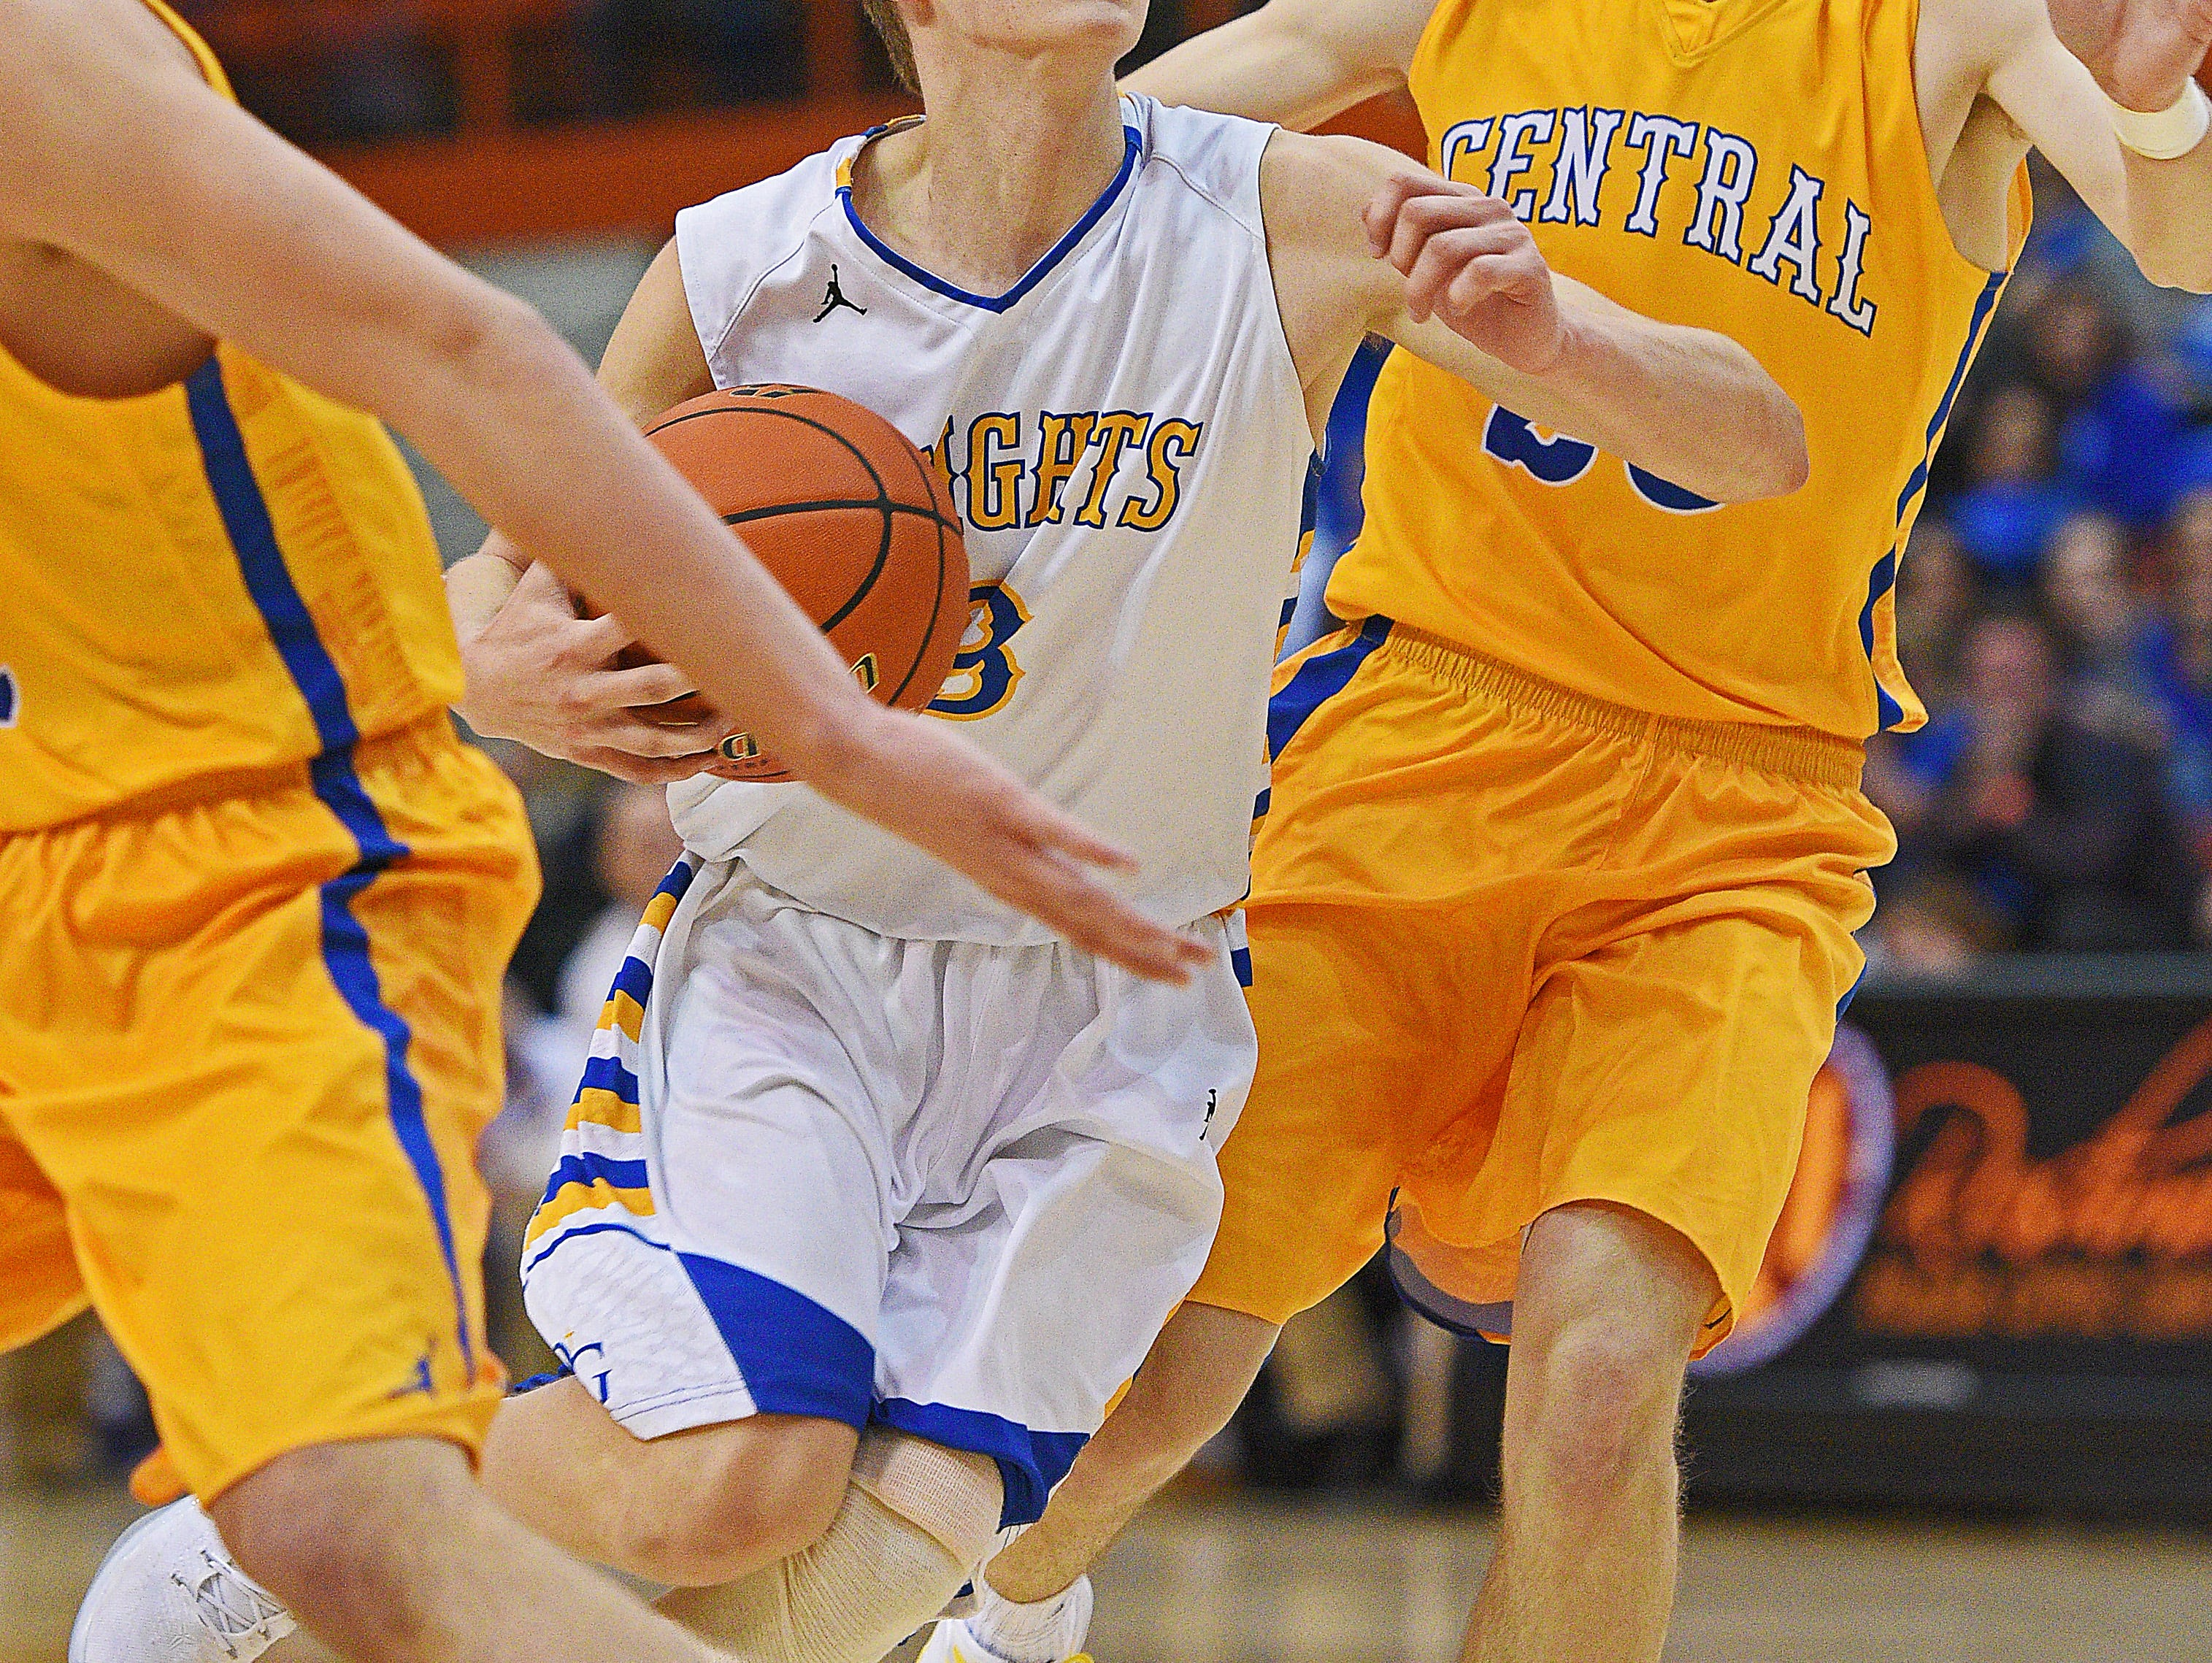 O'Gorman's Louis Peterson (3) dribbles past Aberdeen Central's Jonah Dohrer (20) during the 2017 SDHSAA Class AA State Boys Basketball championship game Saturday, March 18, 2017, at Rushmore Plaza Civic Center in Rapid City.